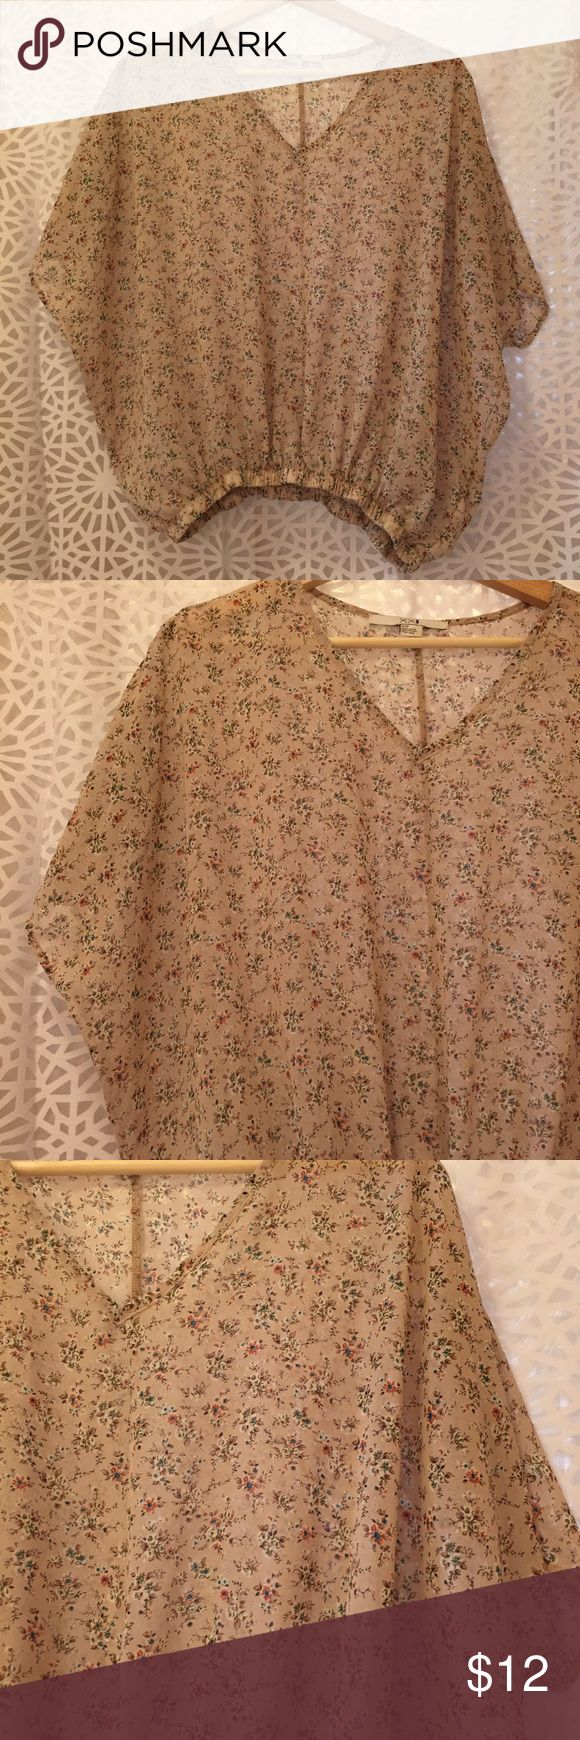 XXI Floral Top XXI Floral Batwing Top. Very Breezy & Pretty Sheer Layering Piece. Loose, Blousy Fit. Delicate Floral Pattern on a Creamy Light Tan Background. (Last Photo Shows the Best Indication of the True Color) Elastic Waist. Very Pretty & Clean Condition. XXI Tops